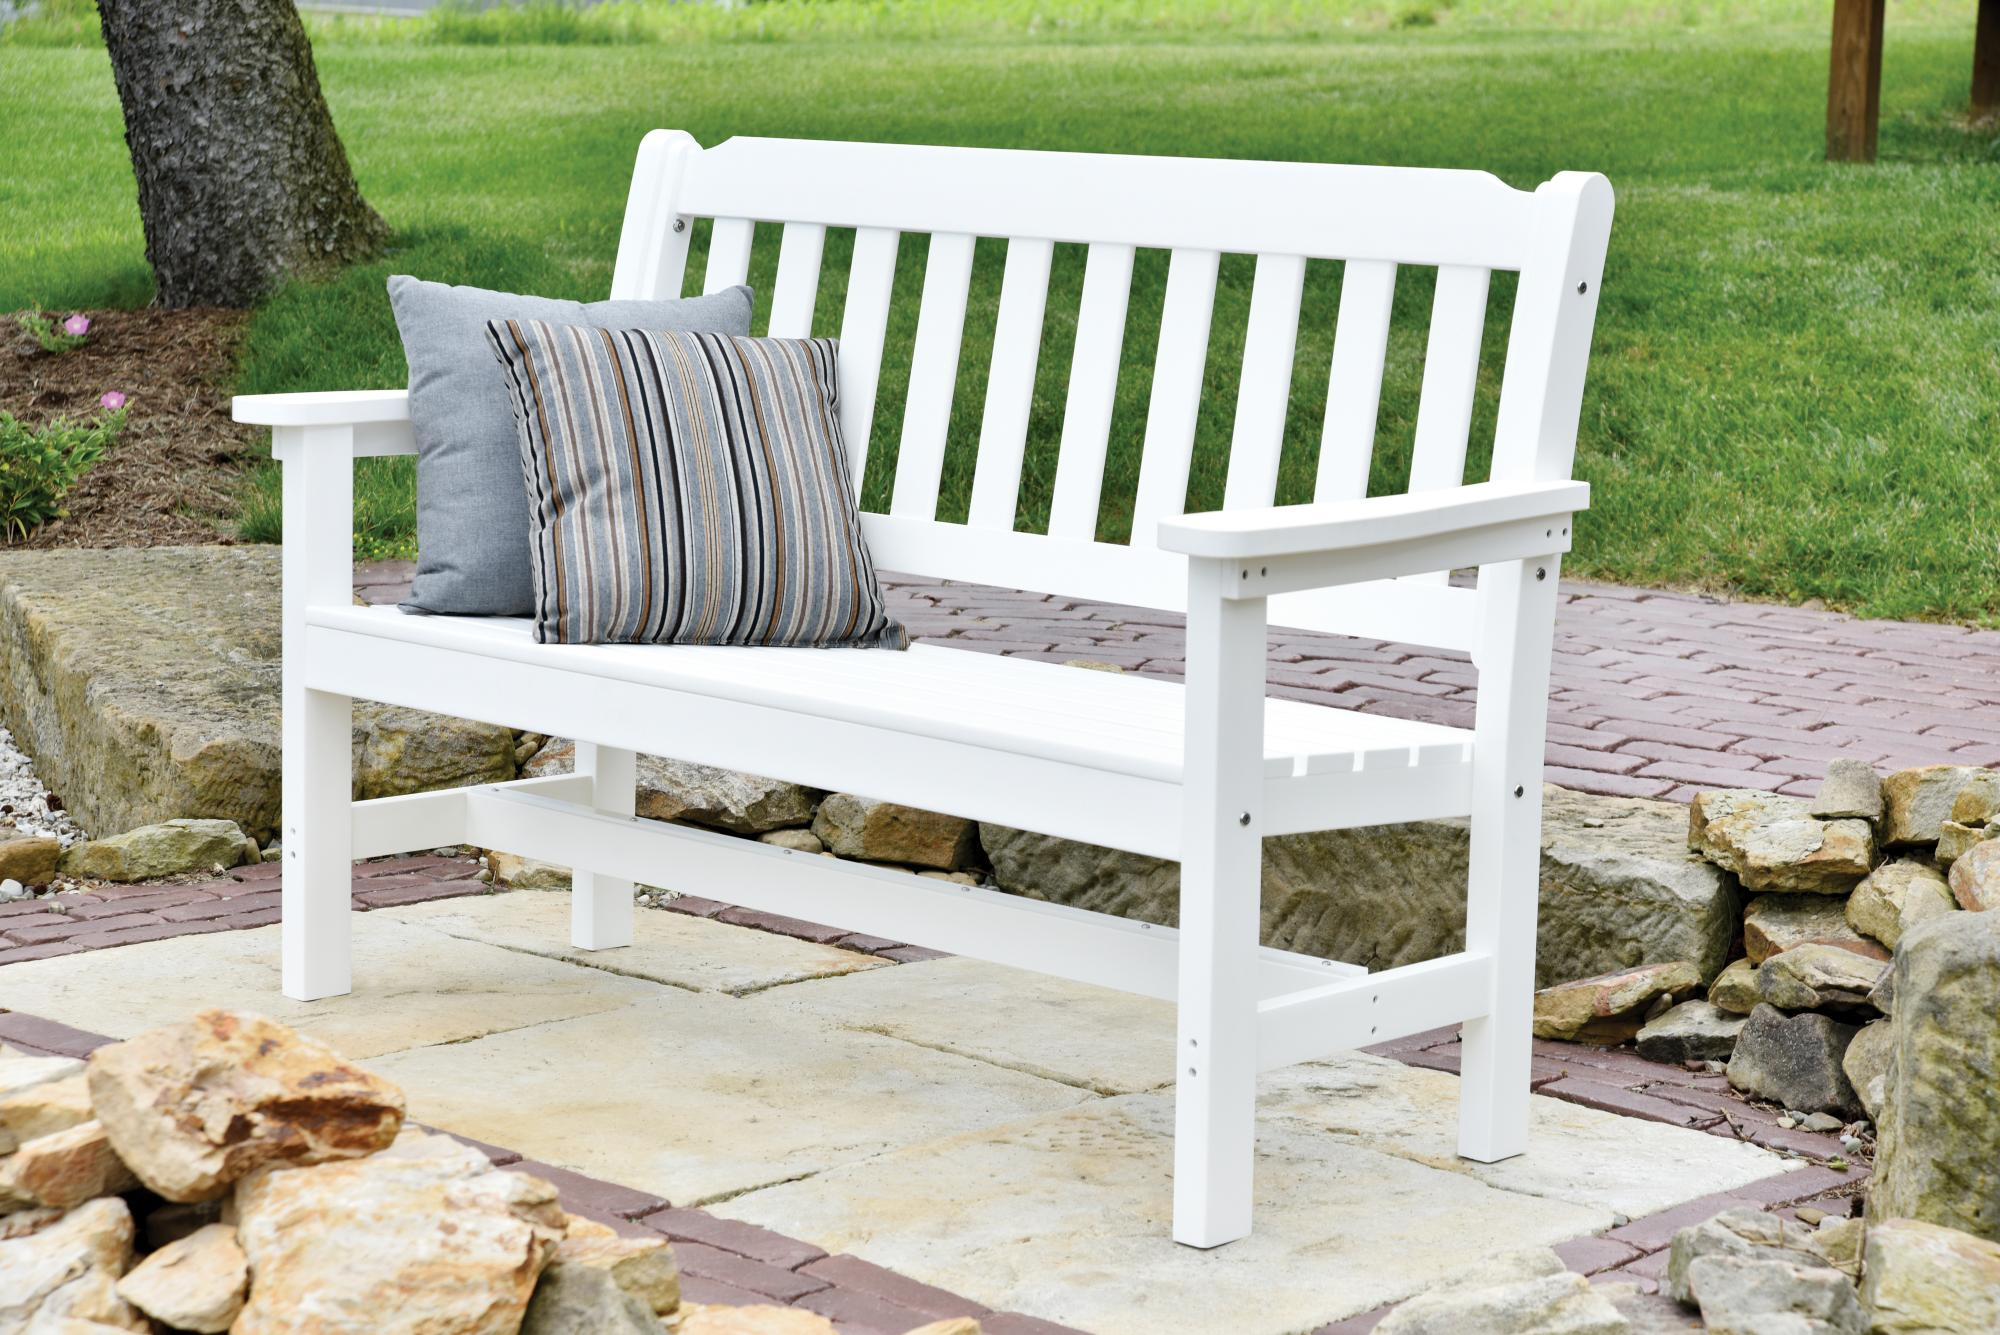 white bench wh outdoor garden bronze benchs itm hg backyard inch porch seat park